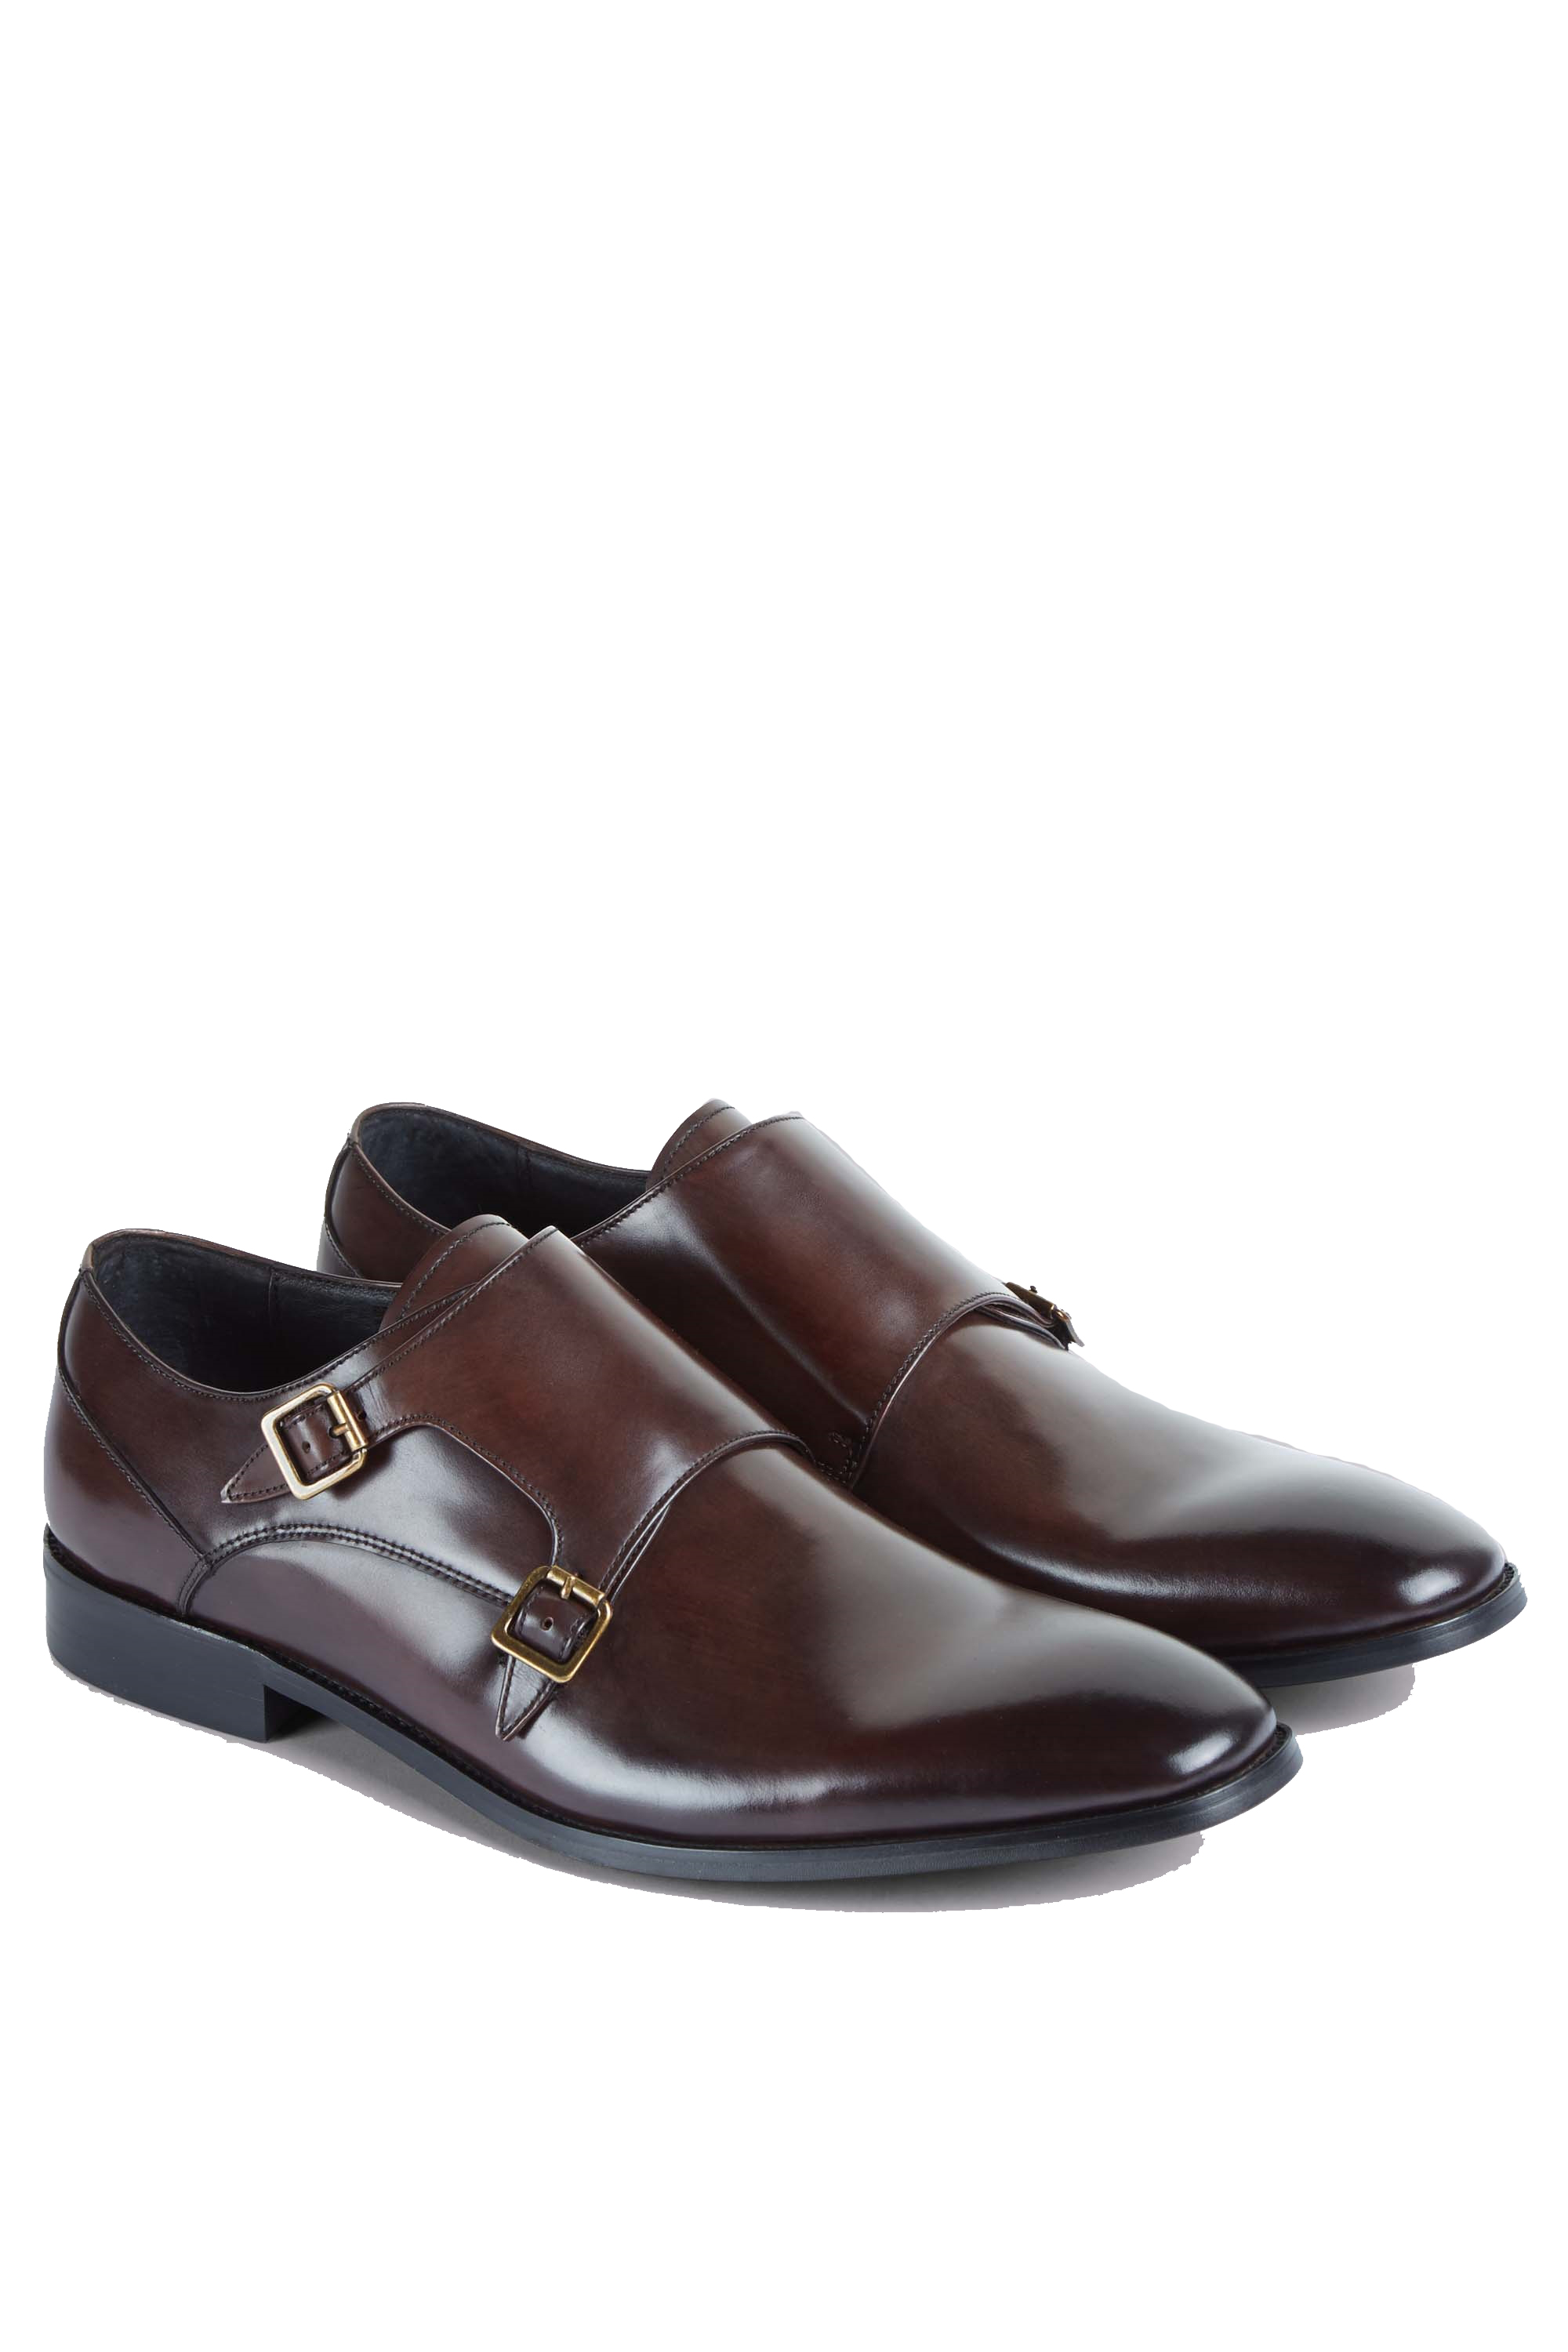 Brown Double Buckle Mens Shoes